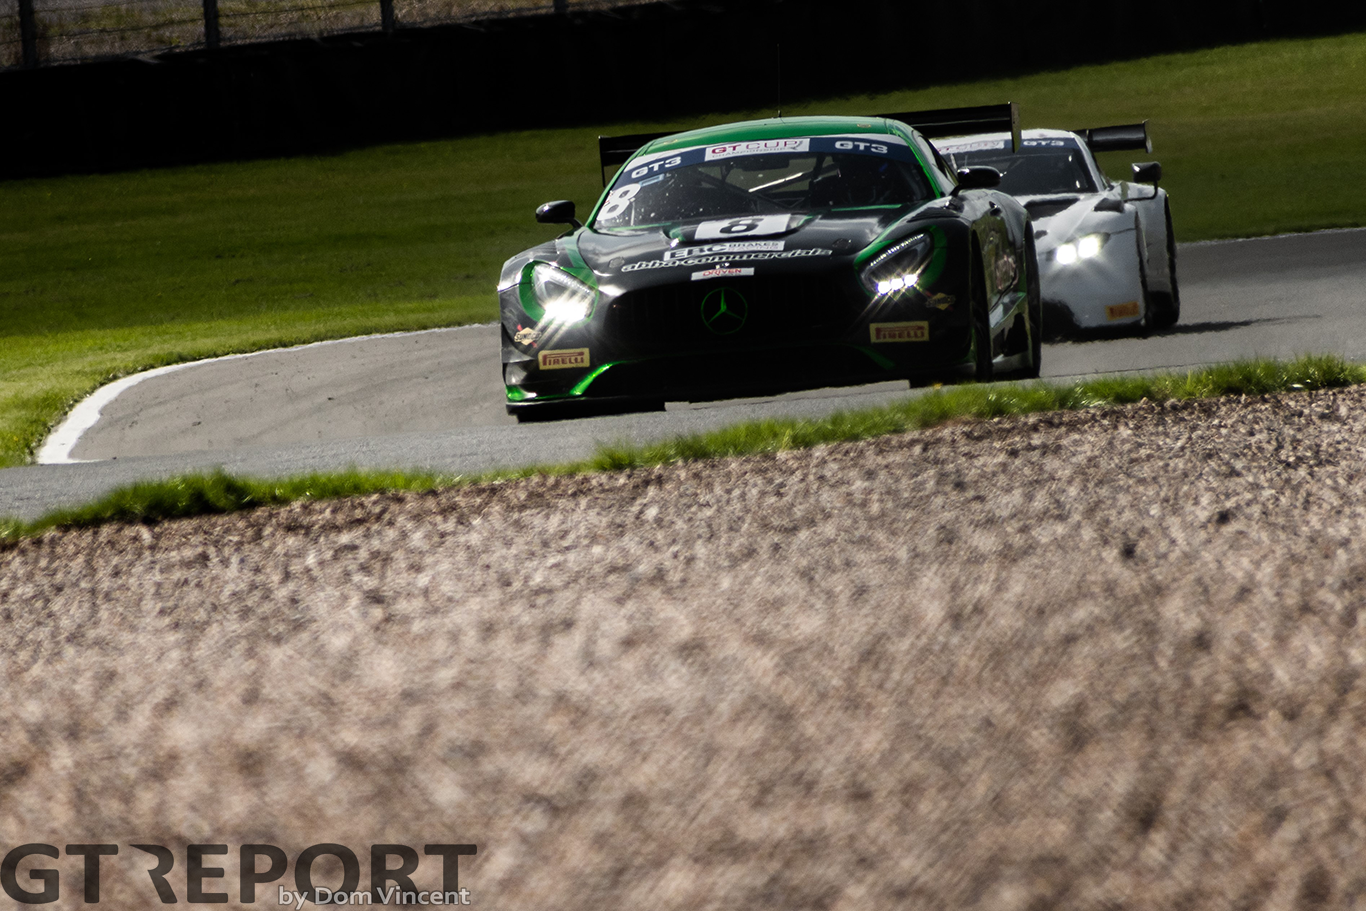 GT Cup 2021 preview: Bigger than ever before